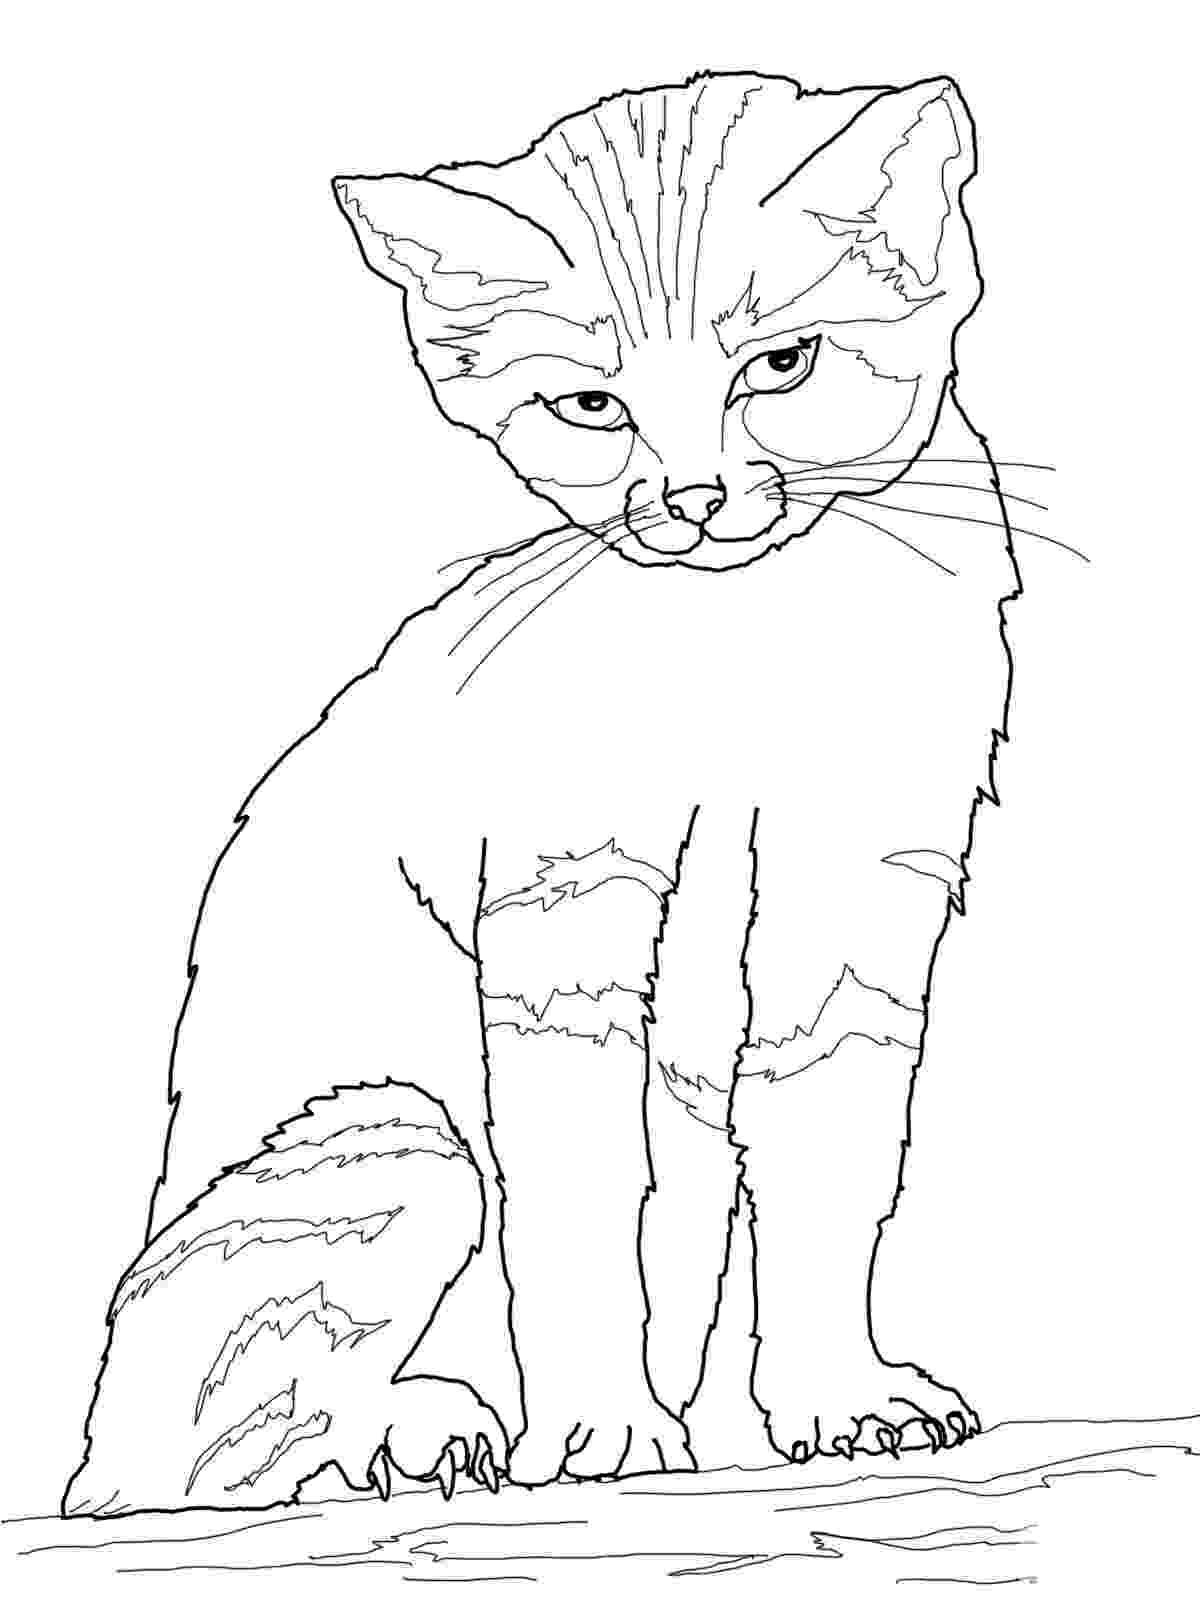 coloring pages of cats free printable cat coloring pages for kids of pages coloring cats